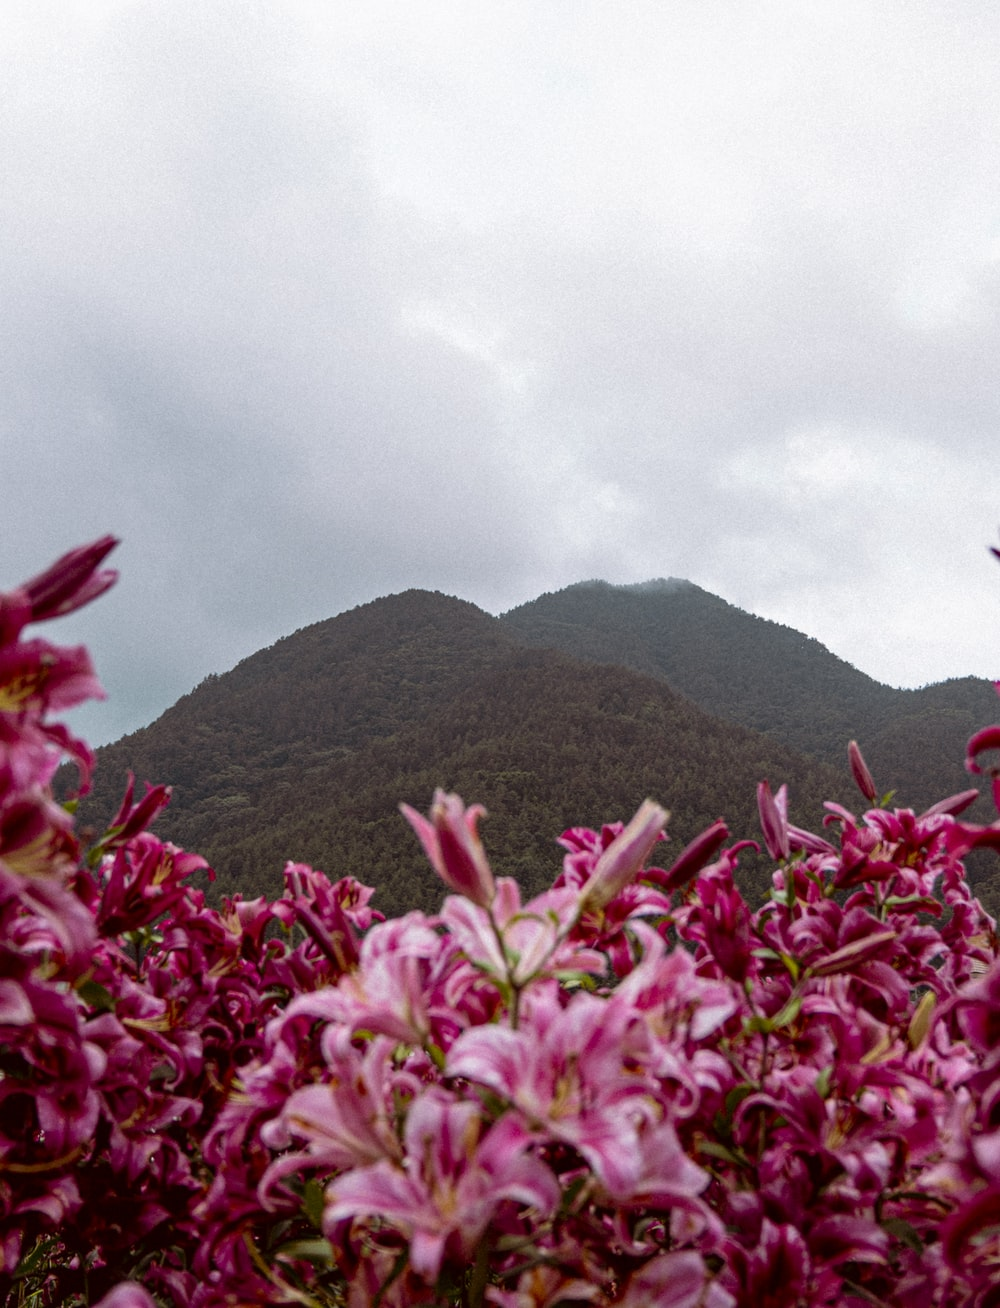 pink flowers on green grass field near green mountain under white cloudy sky during daytime